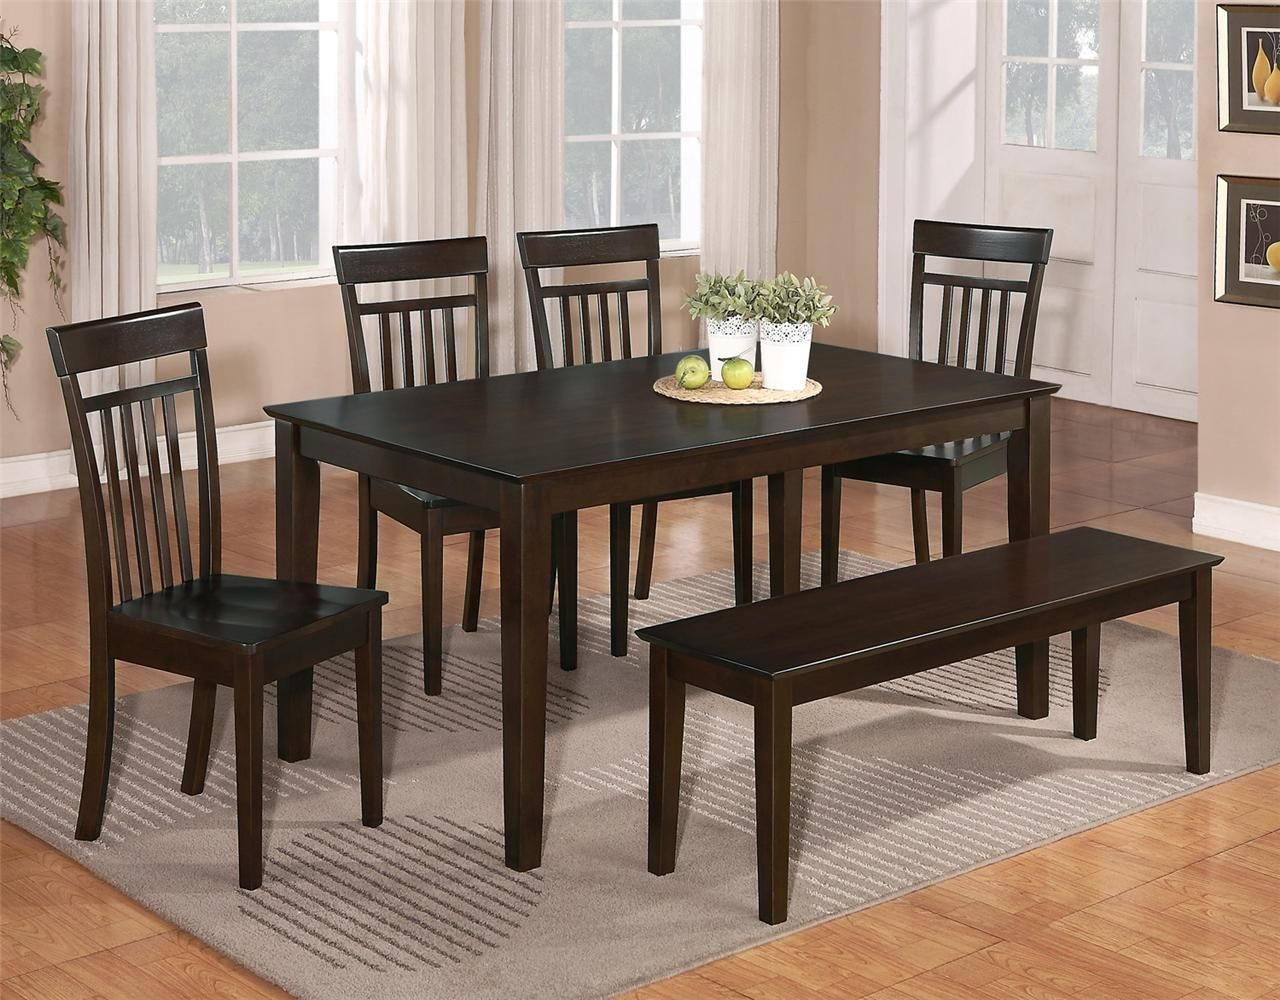 6 Pc Dinette Kitchen Dining Room Set Table W4 Wood Chair And 1 Bench Cappuccino  Ebay